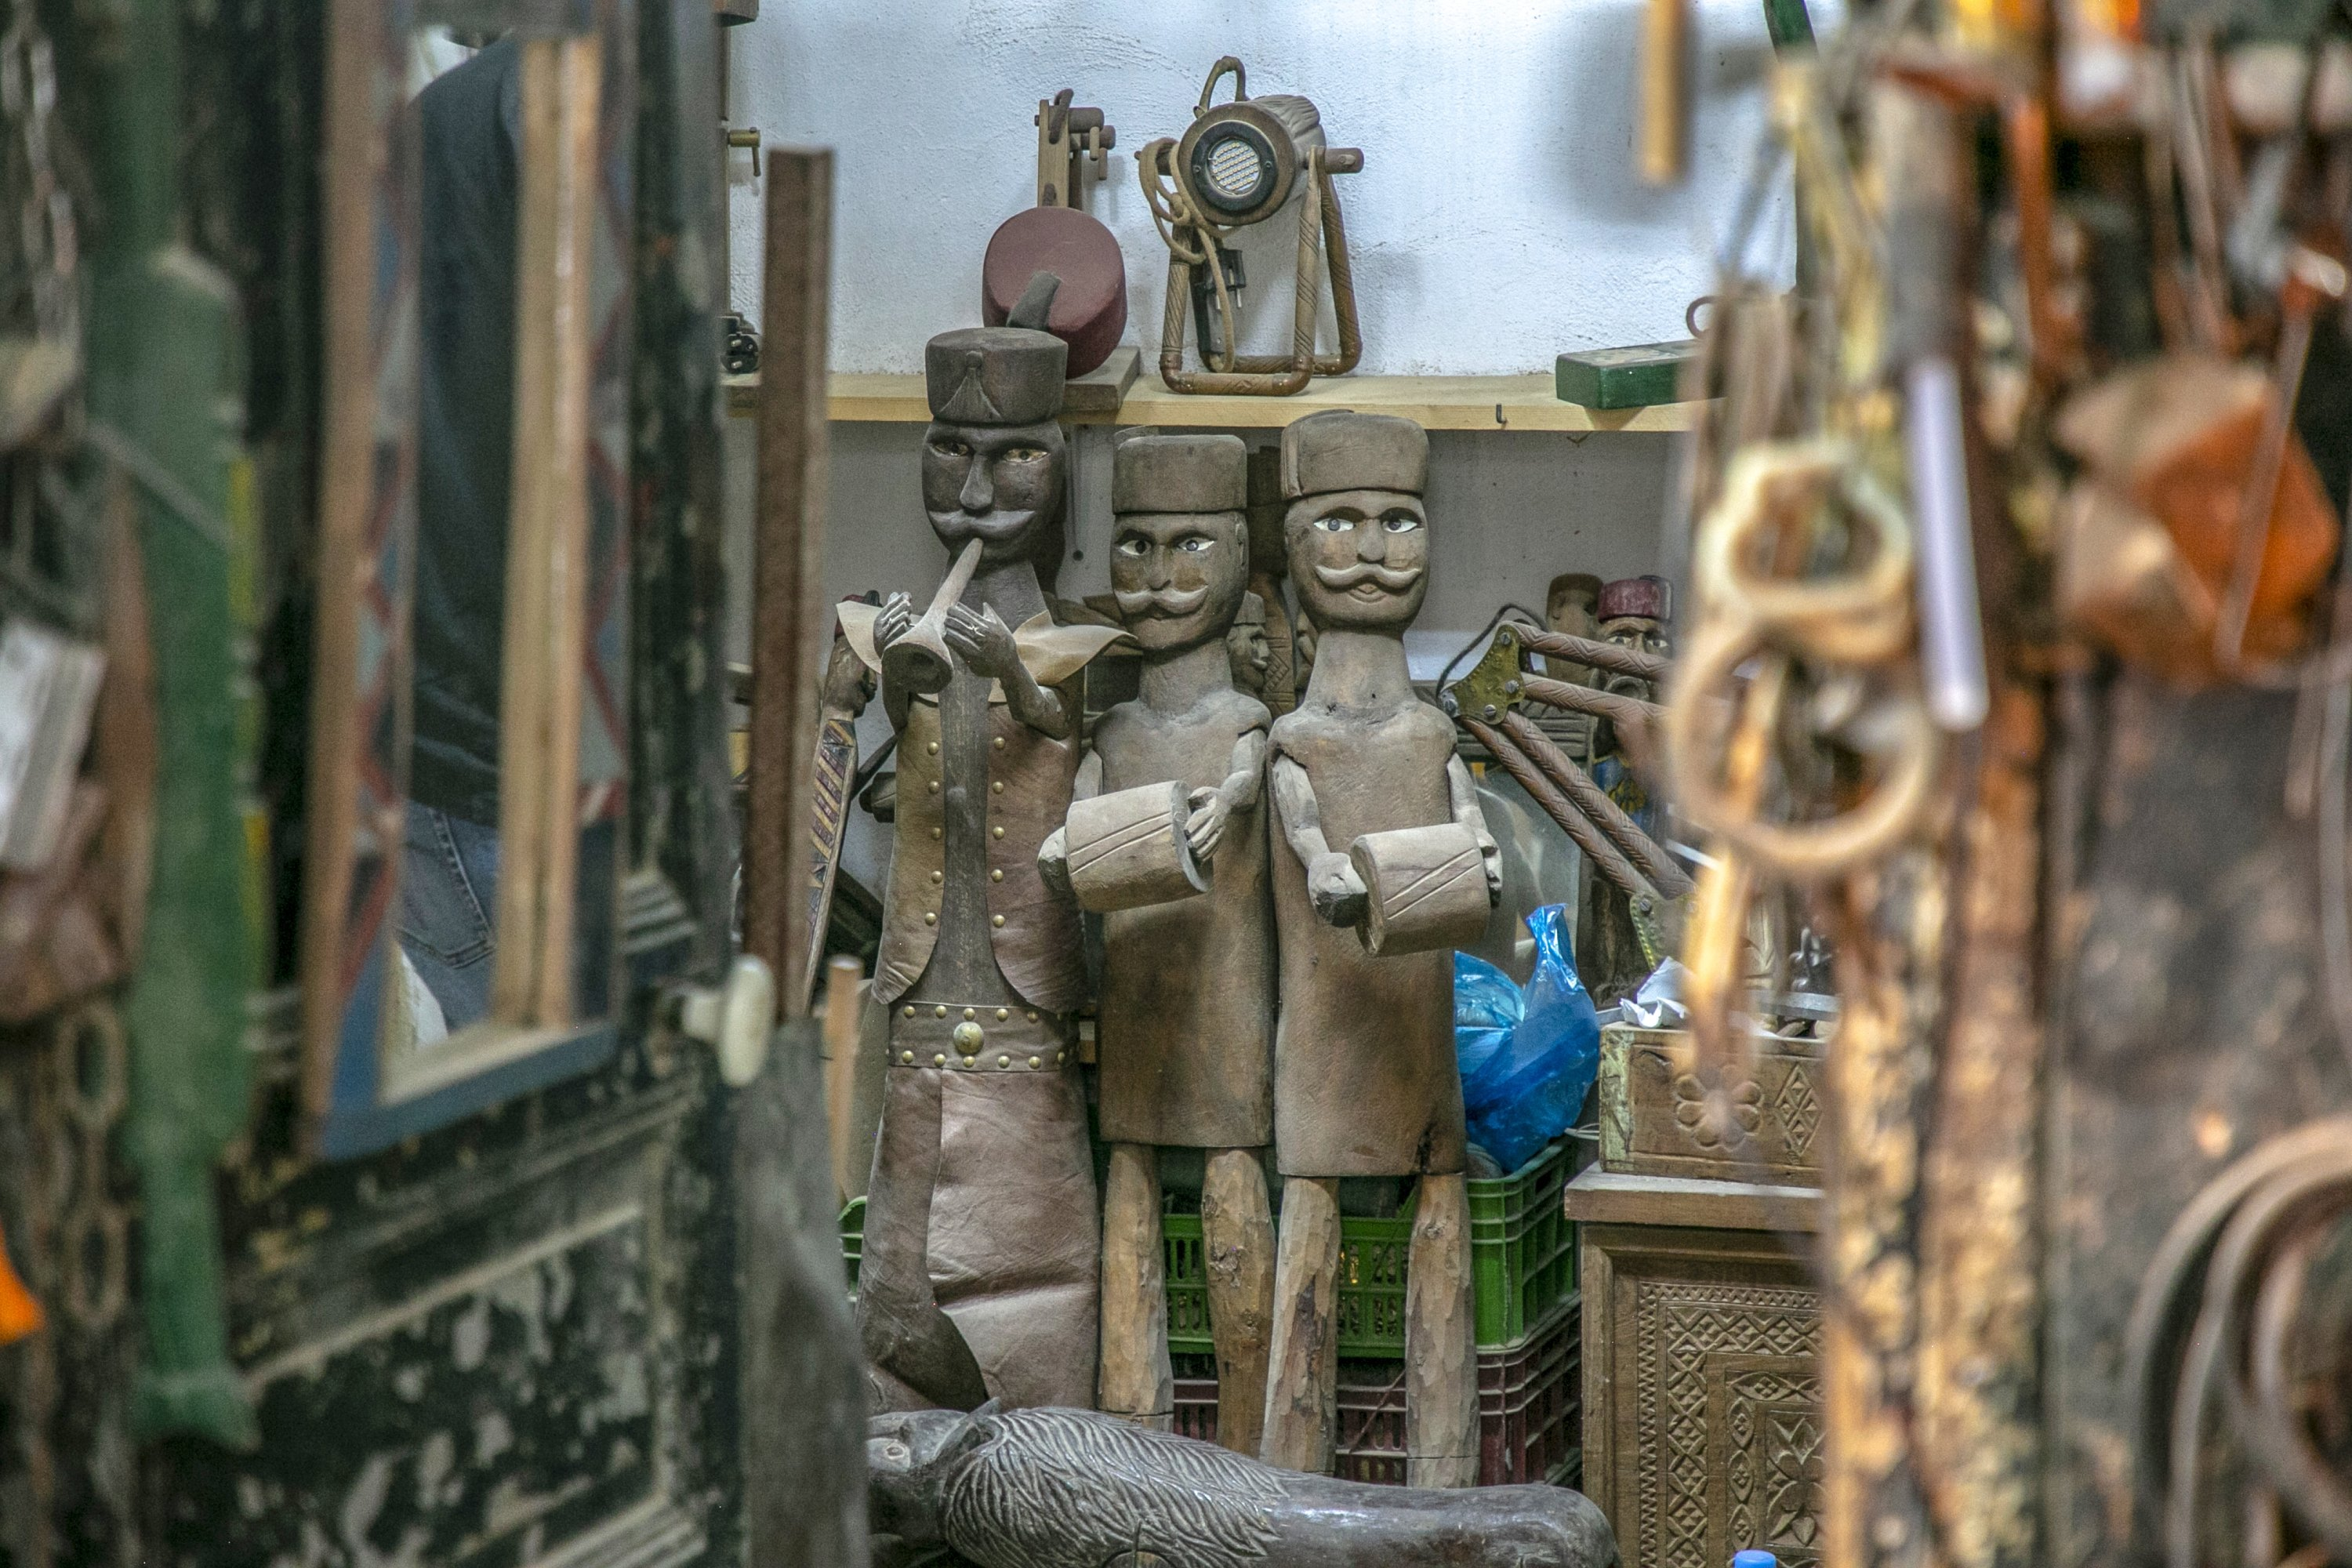 Janissary puppets in the preparation stage at the workshop of the brothers in the capital Tunis, Tunisia, Oct. 10, 2020. (AA Photo)